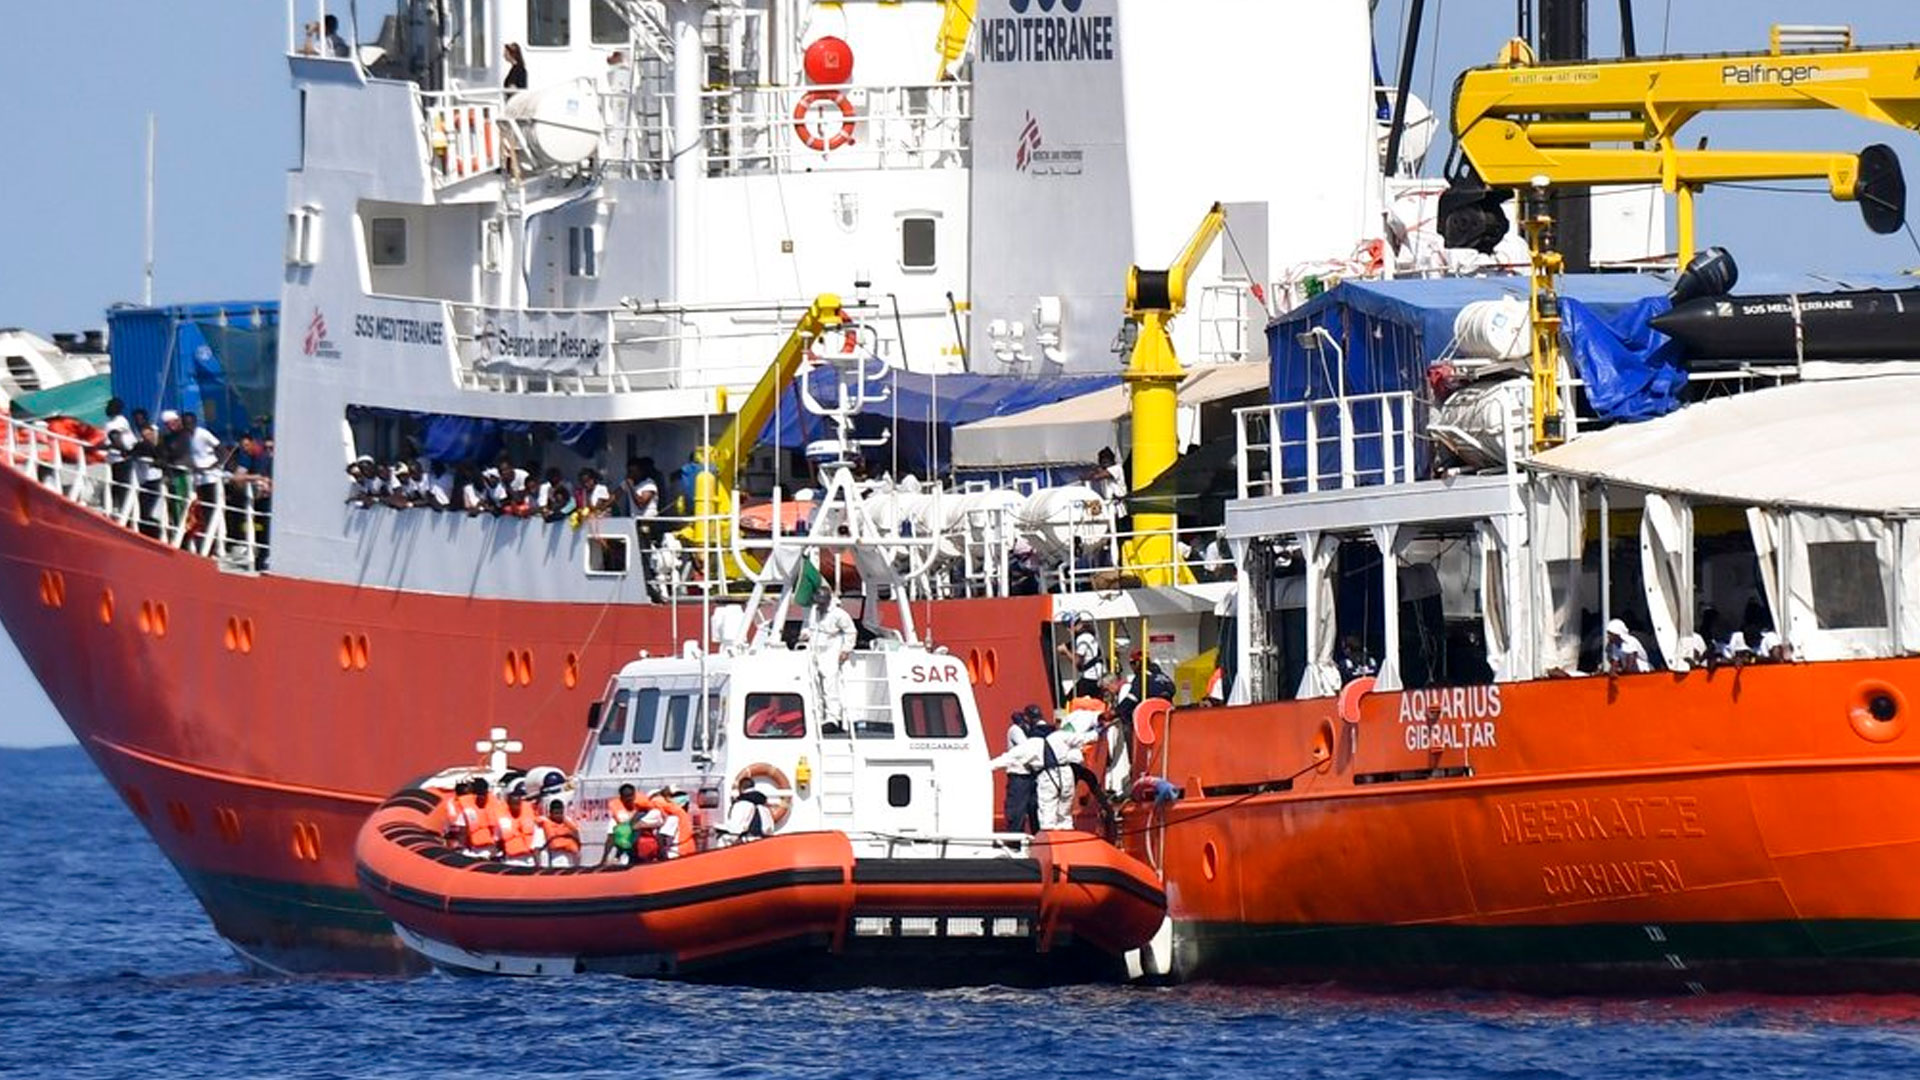 aquarius-migrant-rescue_1529227641604.jpg